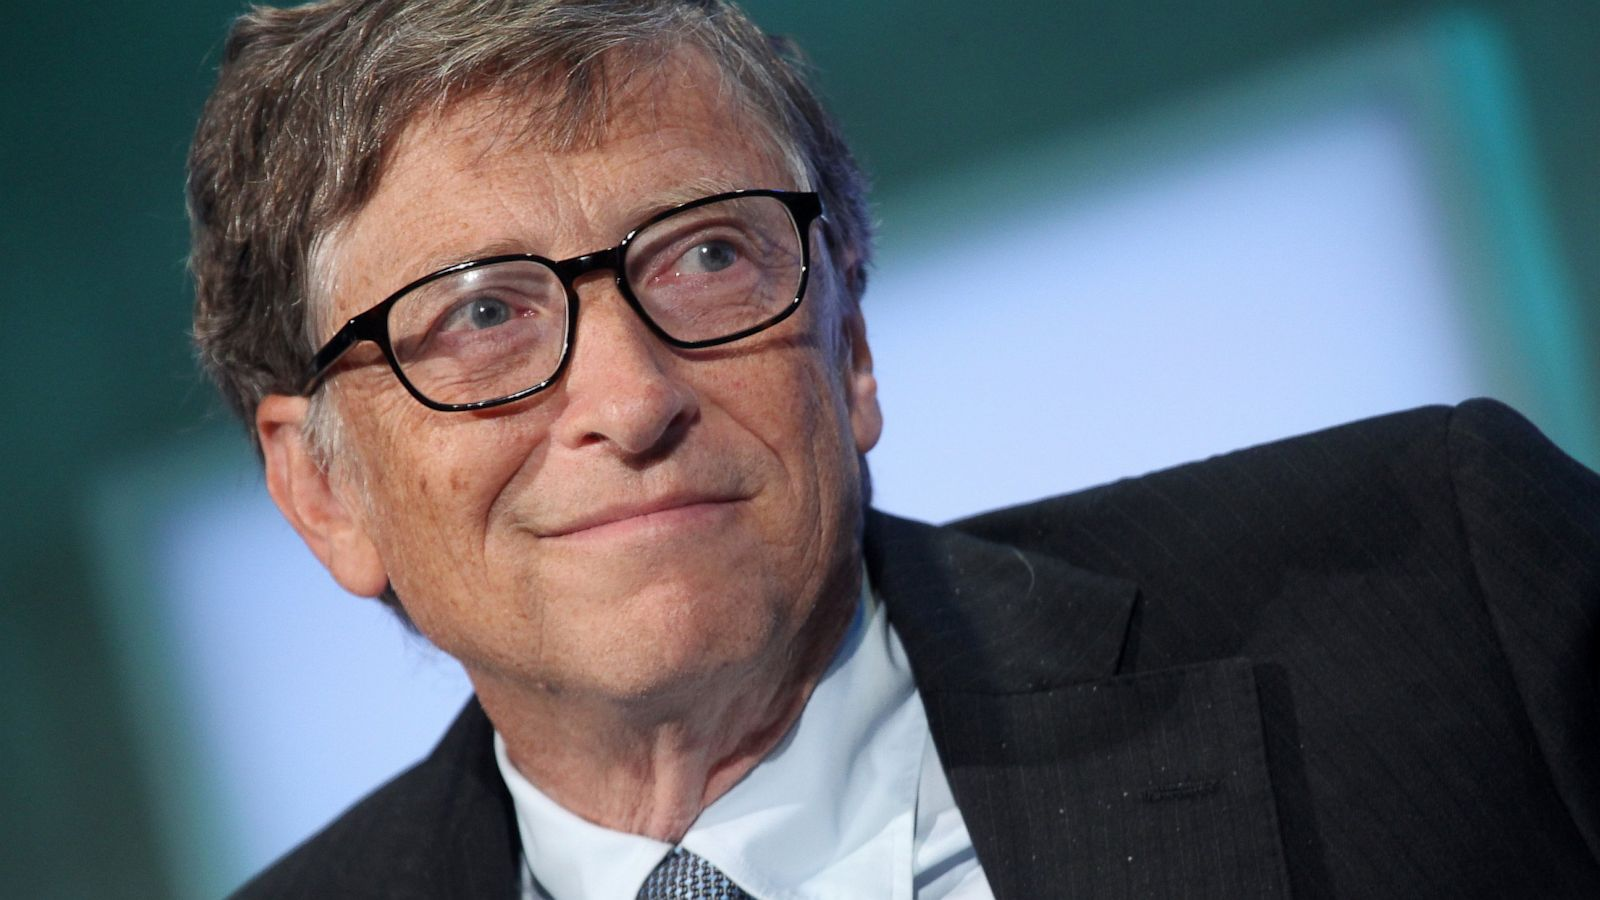 microsoft shareholders call for bill gates to step down as chairman